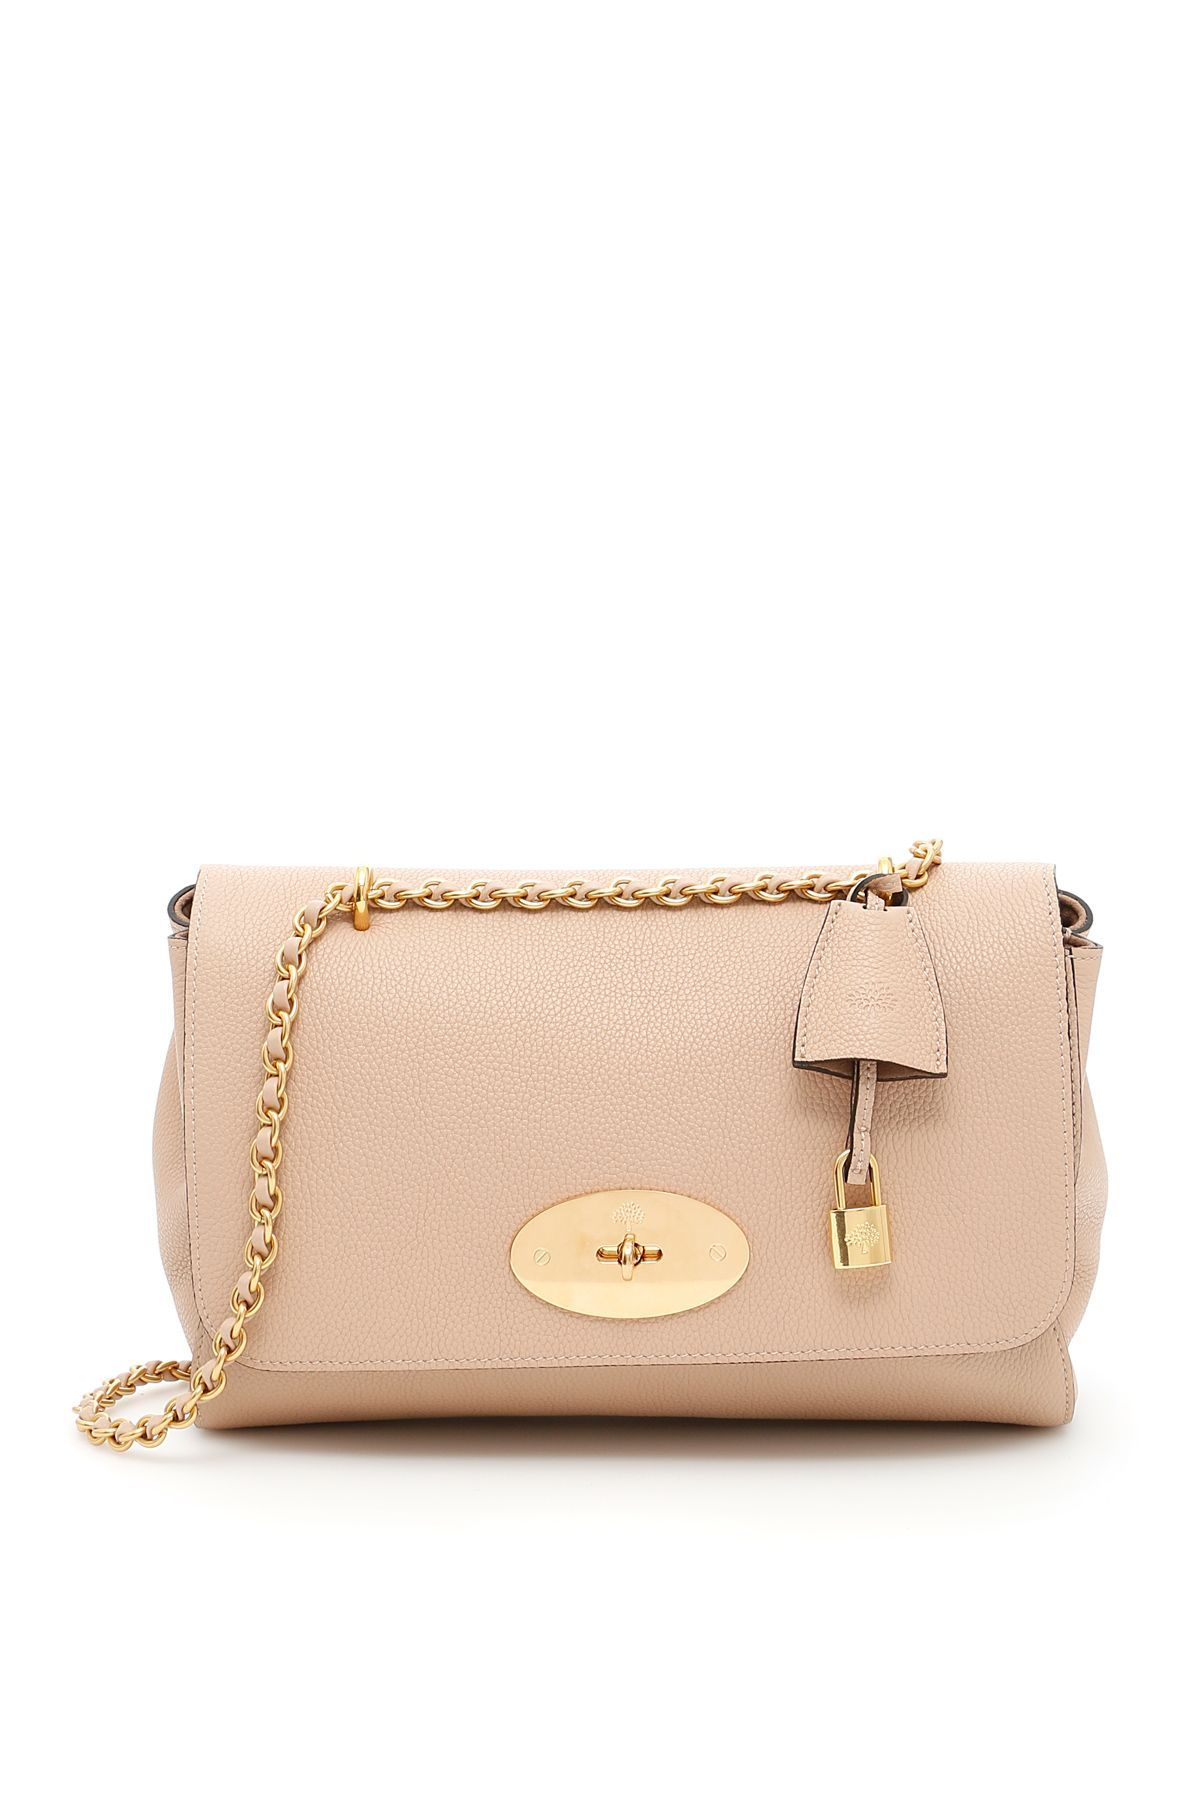 1fa7e89f6fc MULBERRY SMALL CLASSIC GRAIN LILY BAG.  mulberry  bags  leather  lining   accessories  shoulder bags  charm  hand bags